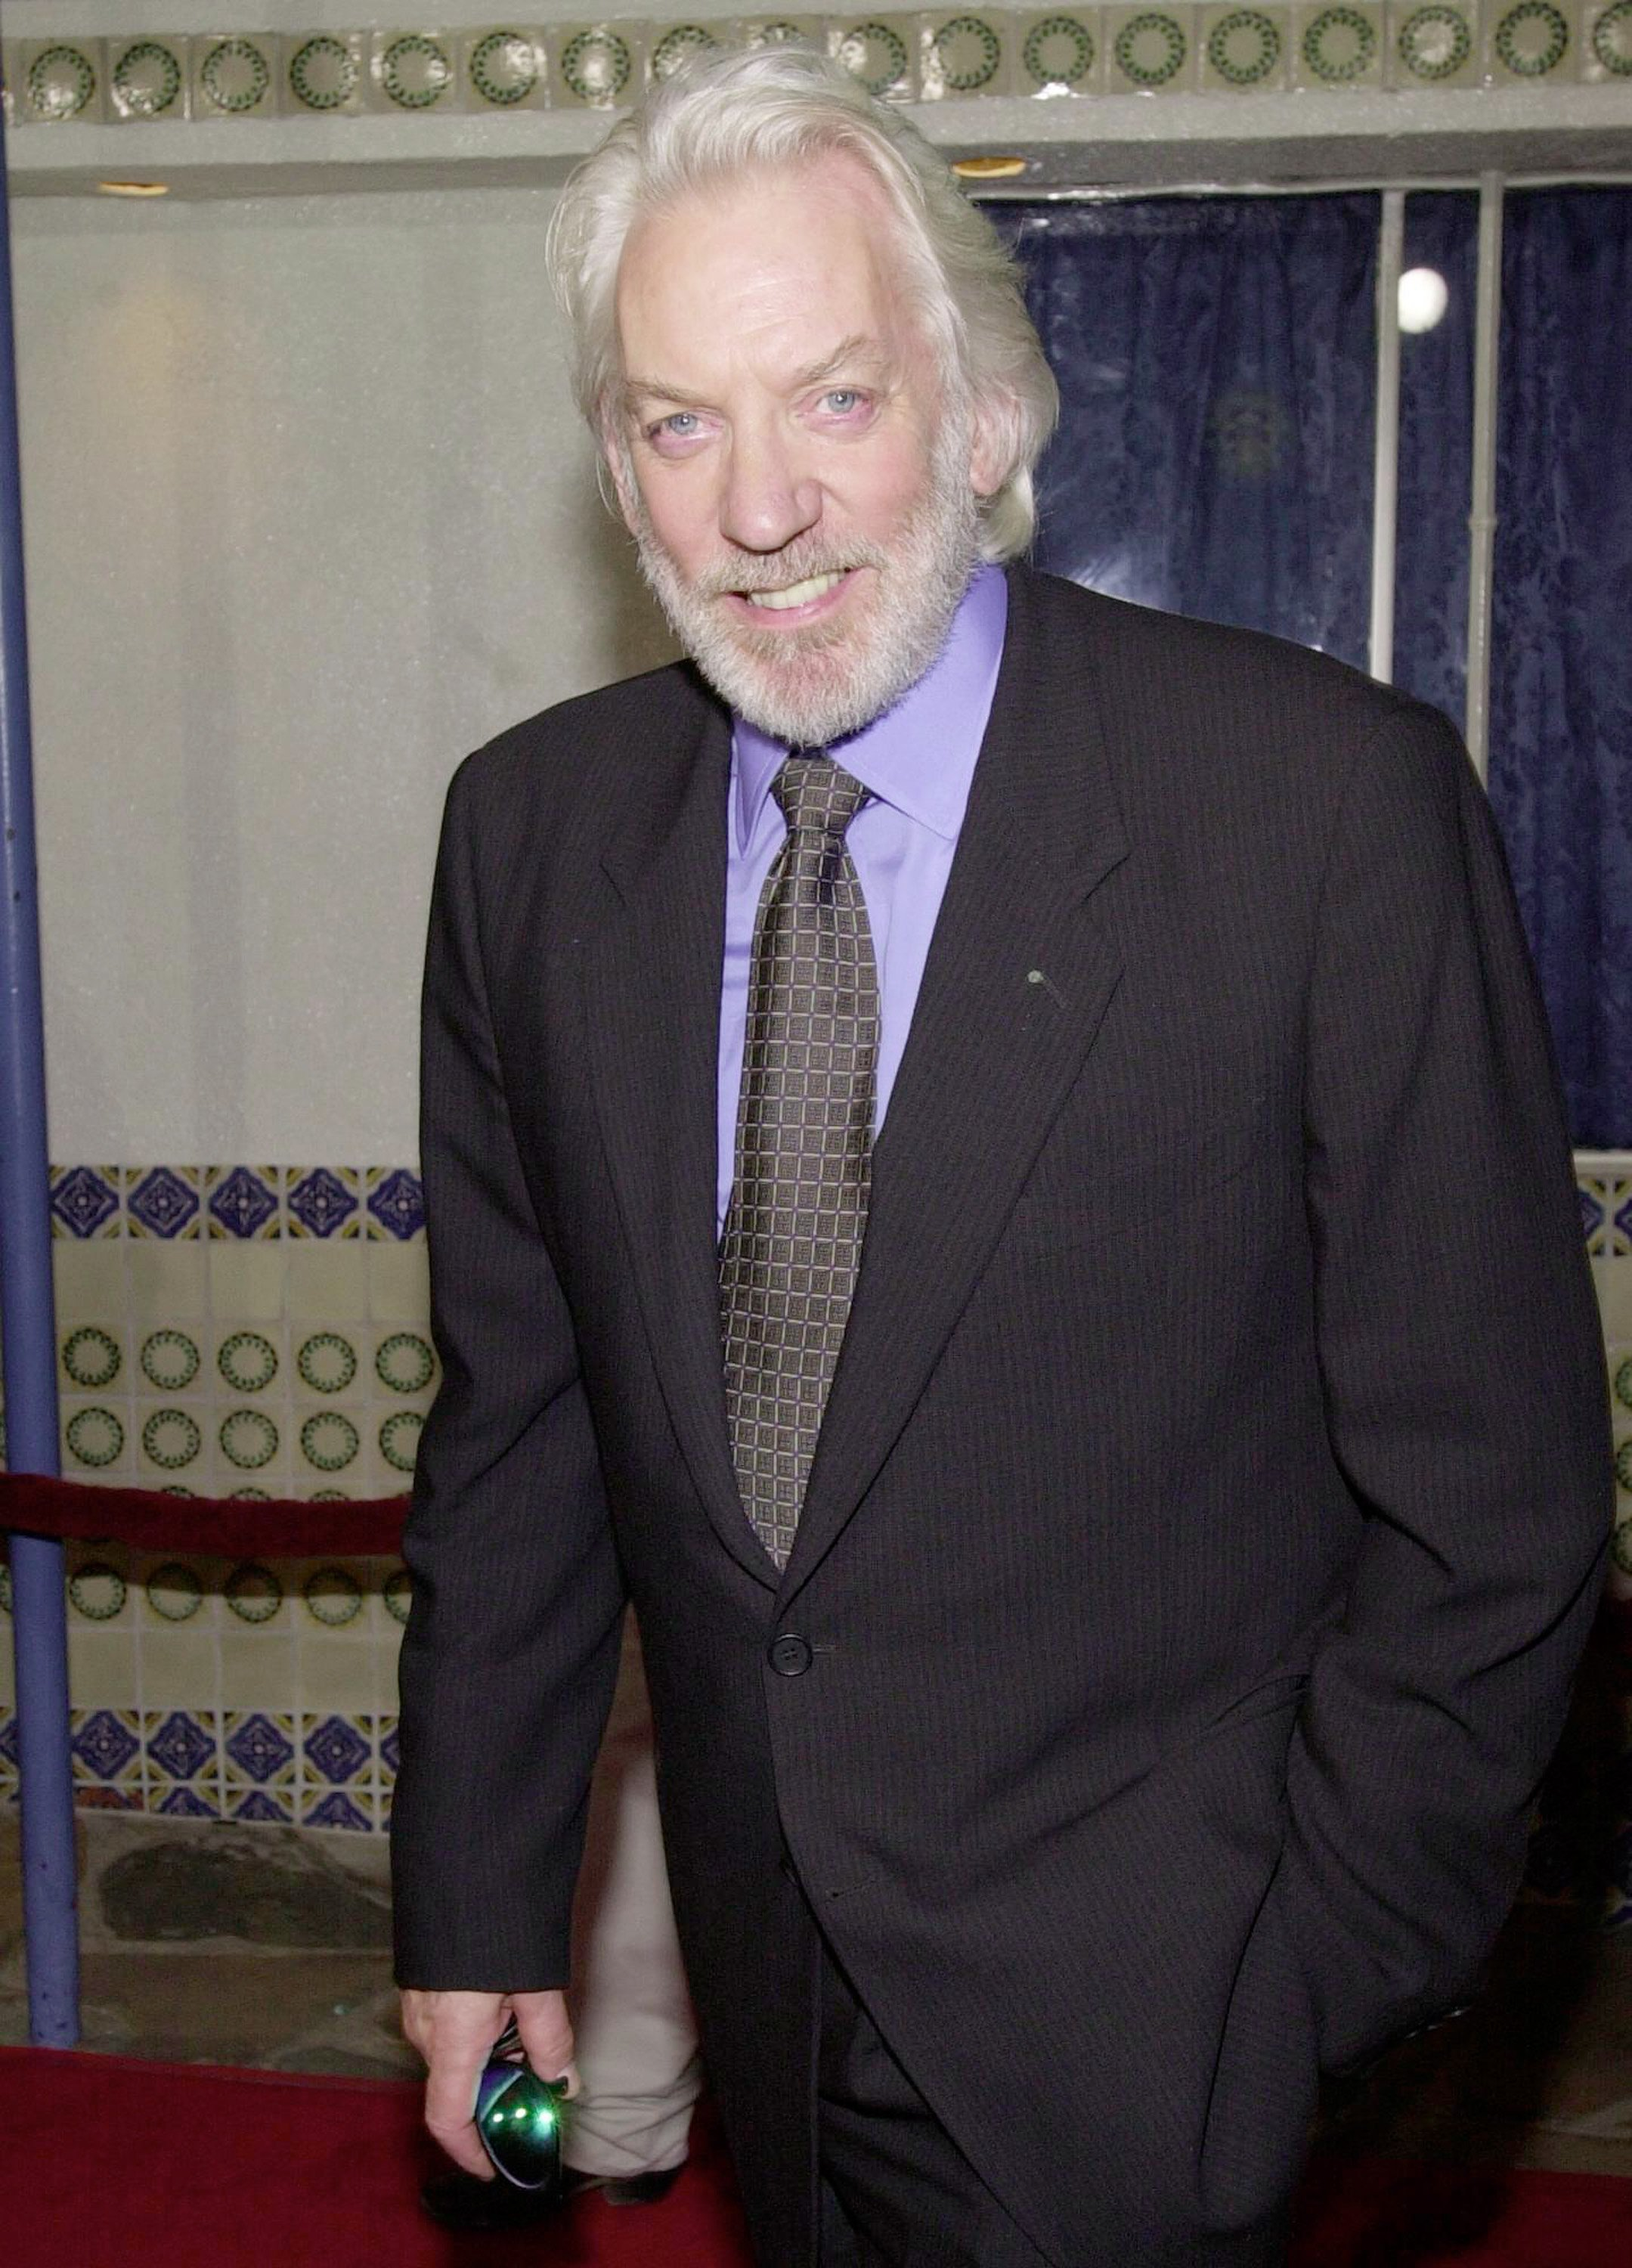 """Donald Sutherland at the premiere of """"Space Cowboys"""" on Aug. 1, 2000 in Westwood, California 